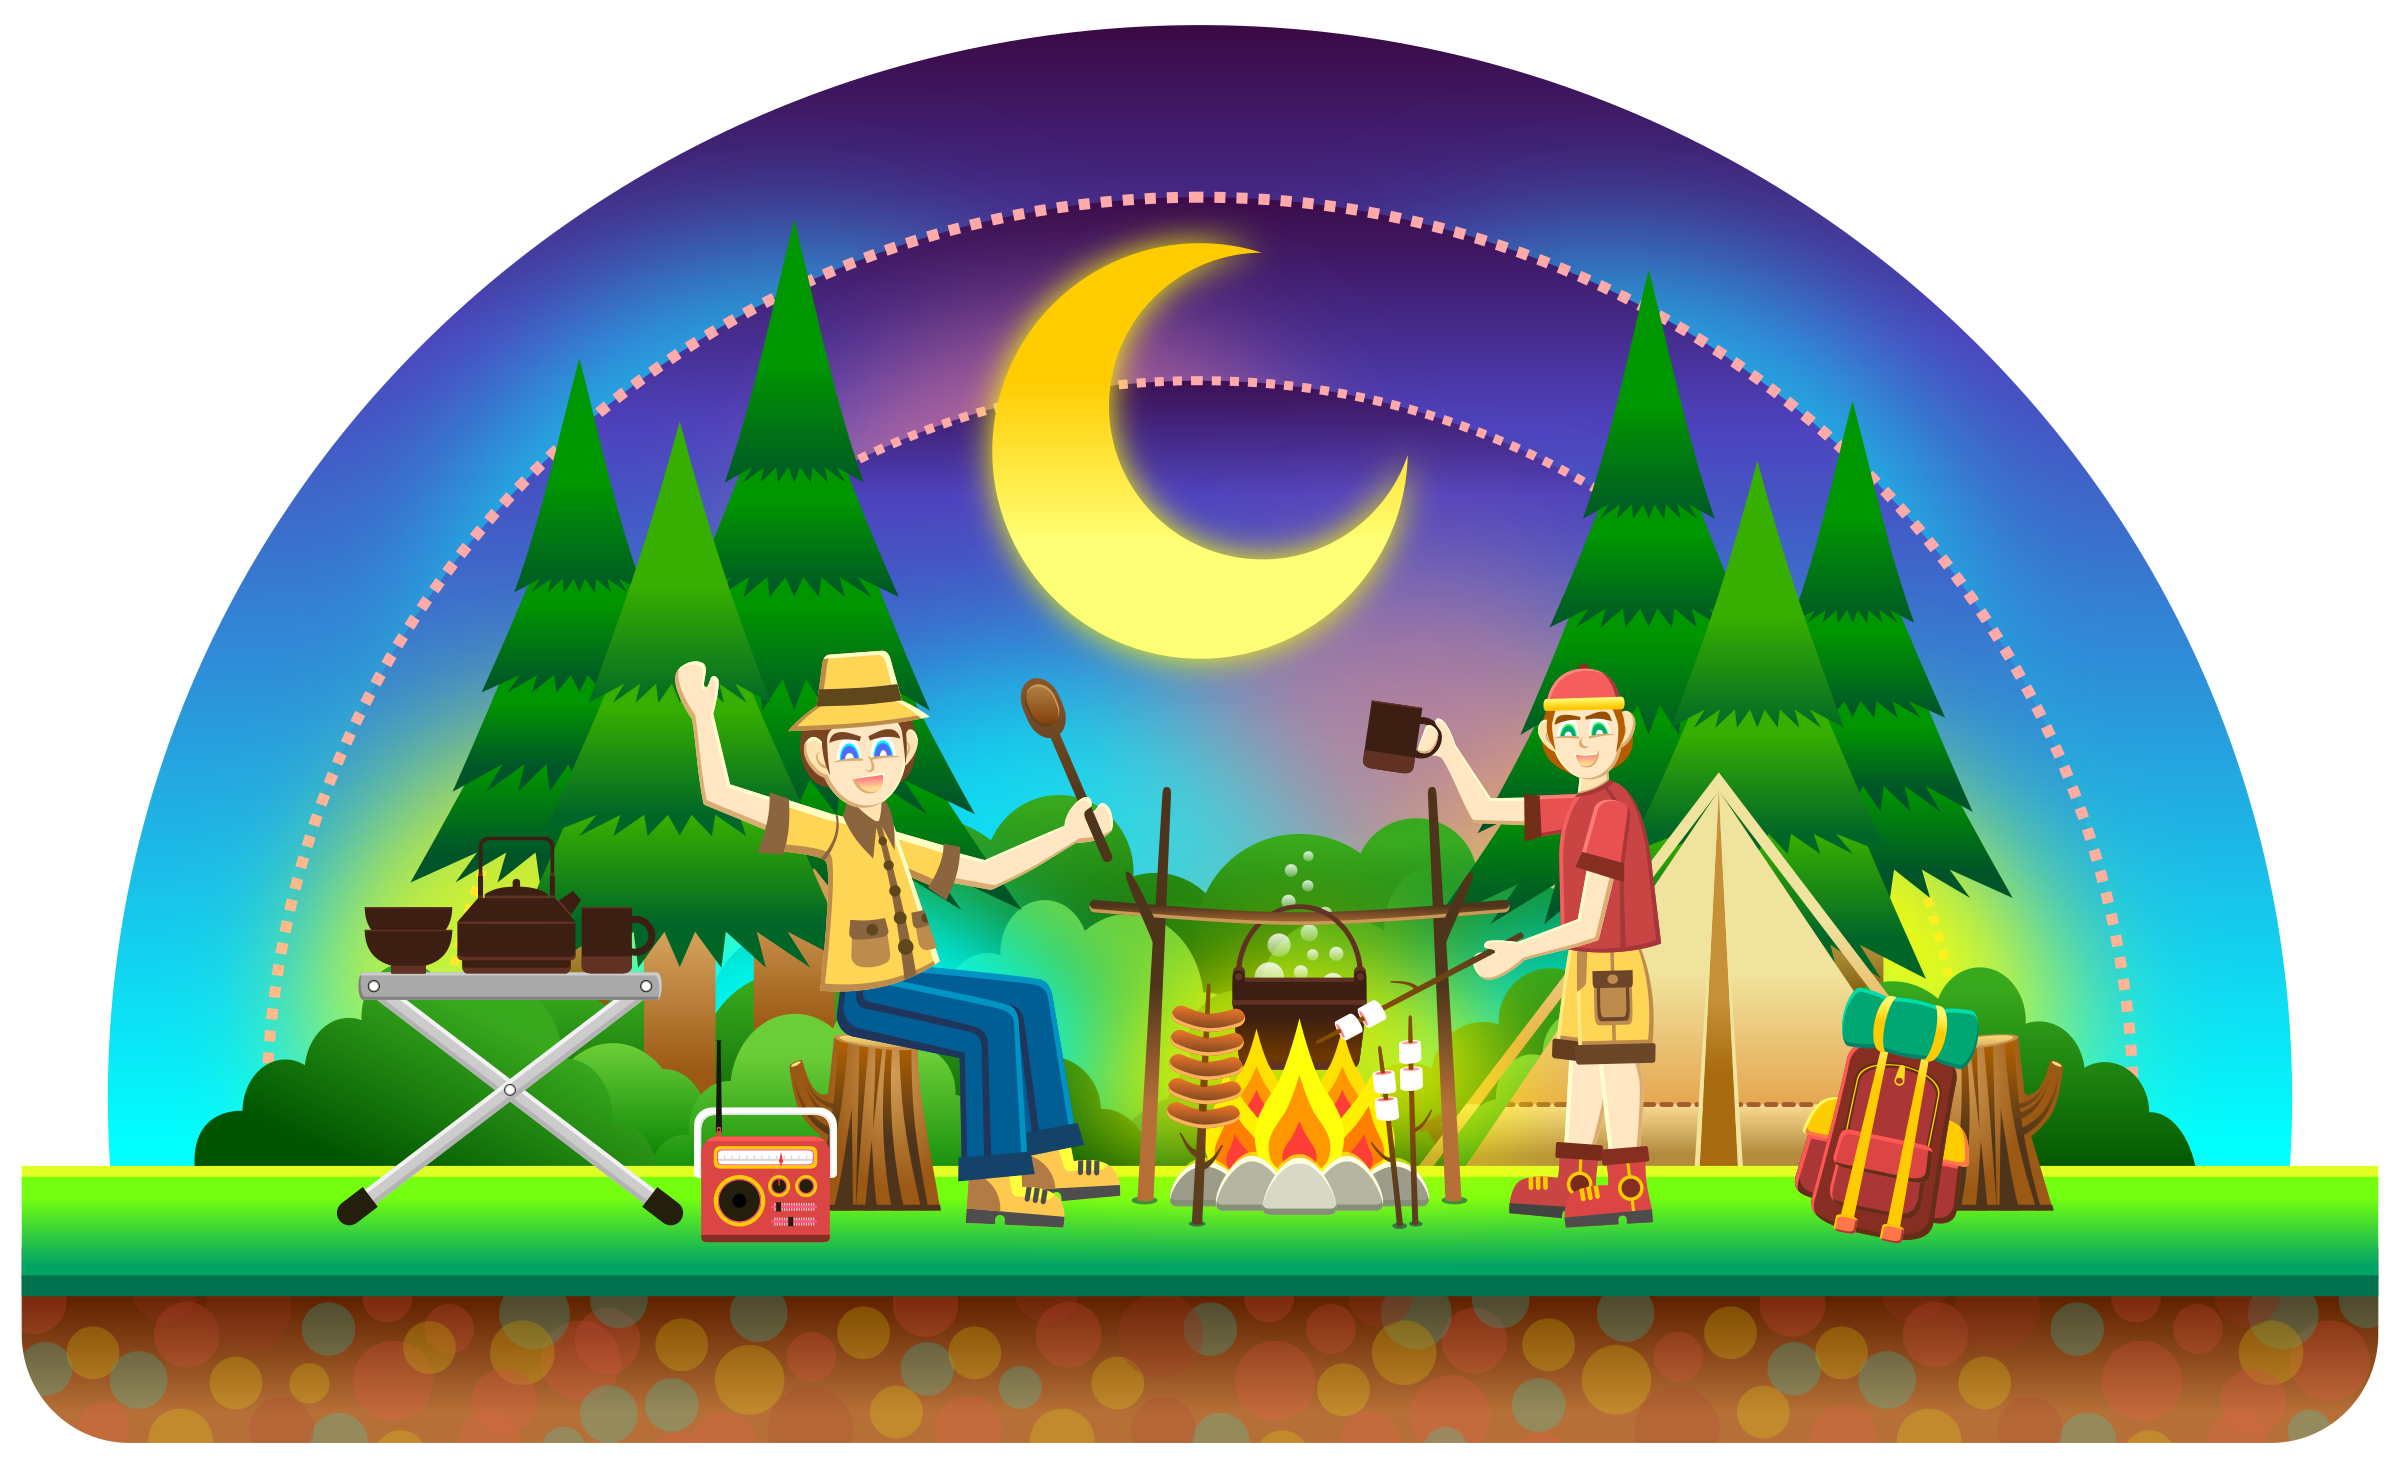 clip library download Big image png. Camping clipart camping scene.